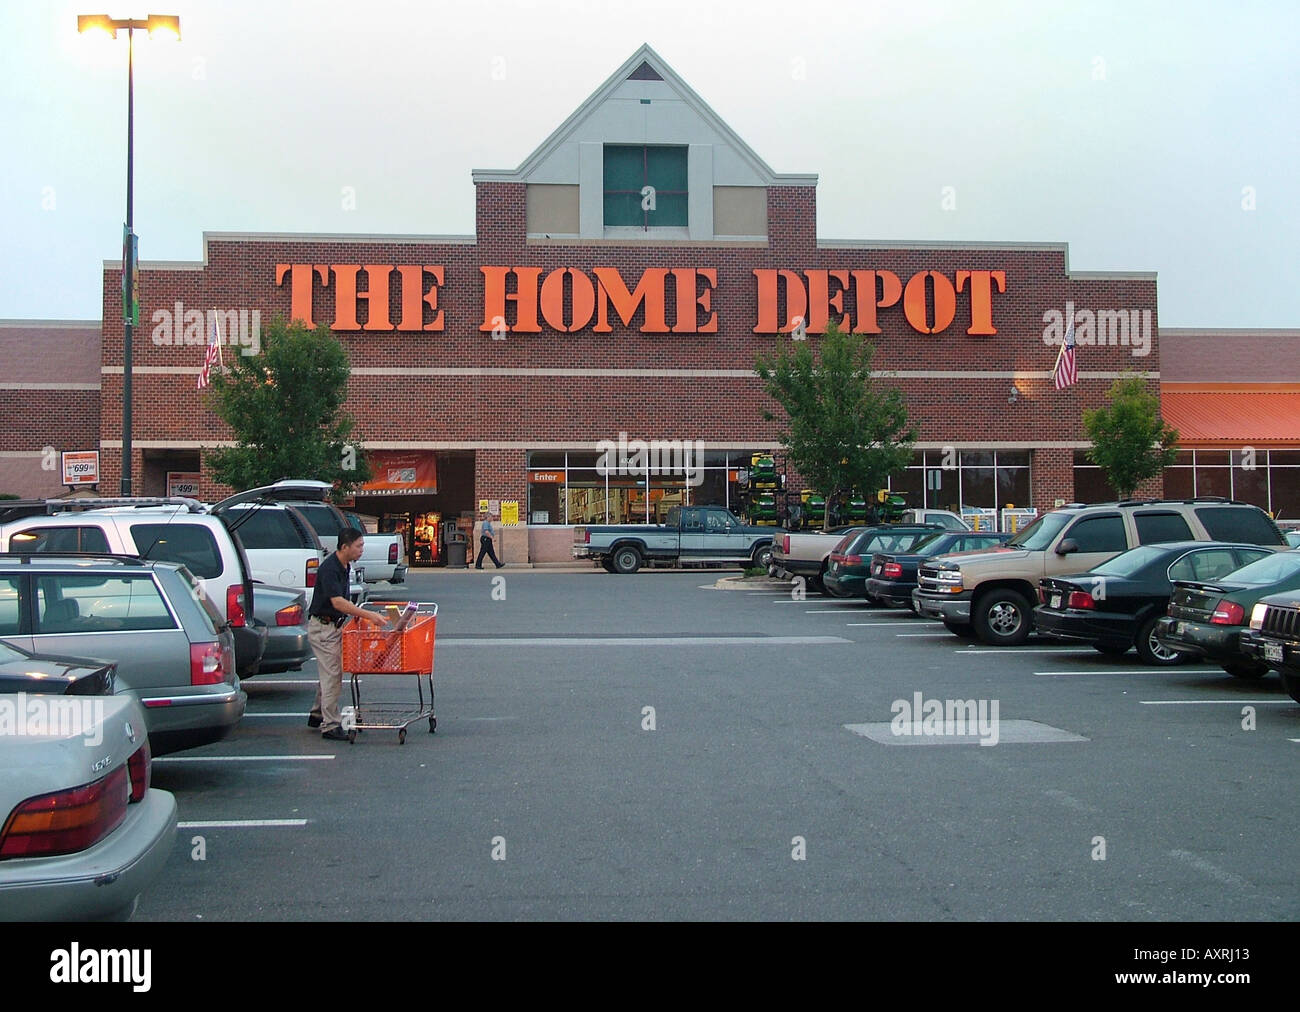 The Home Depot In College Park Md Stock Photo Royalty Free Image